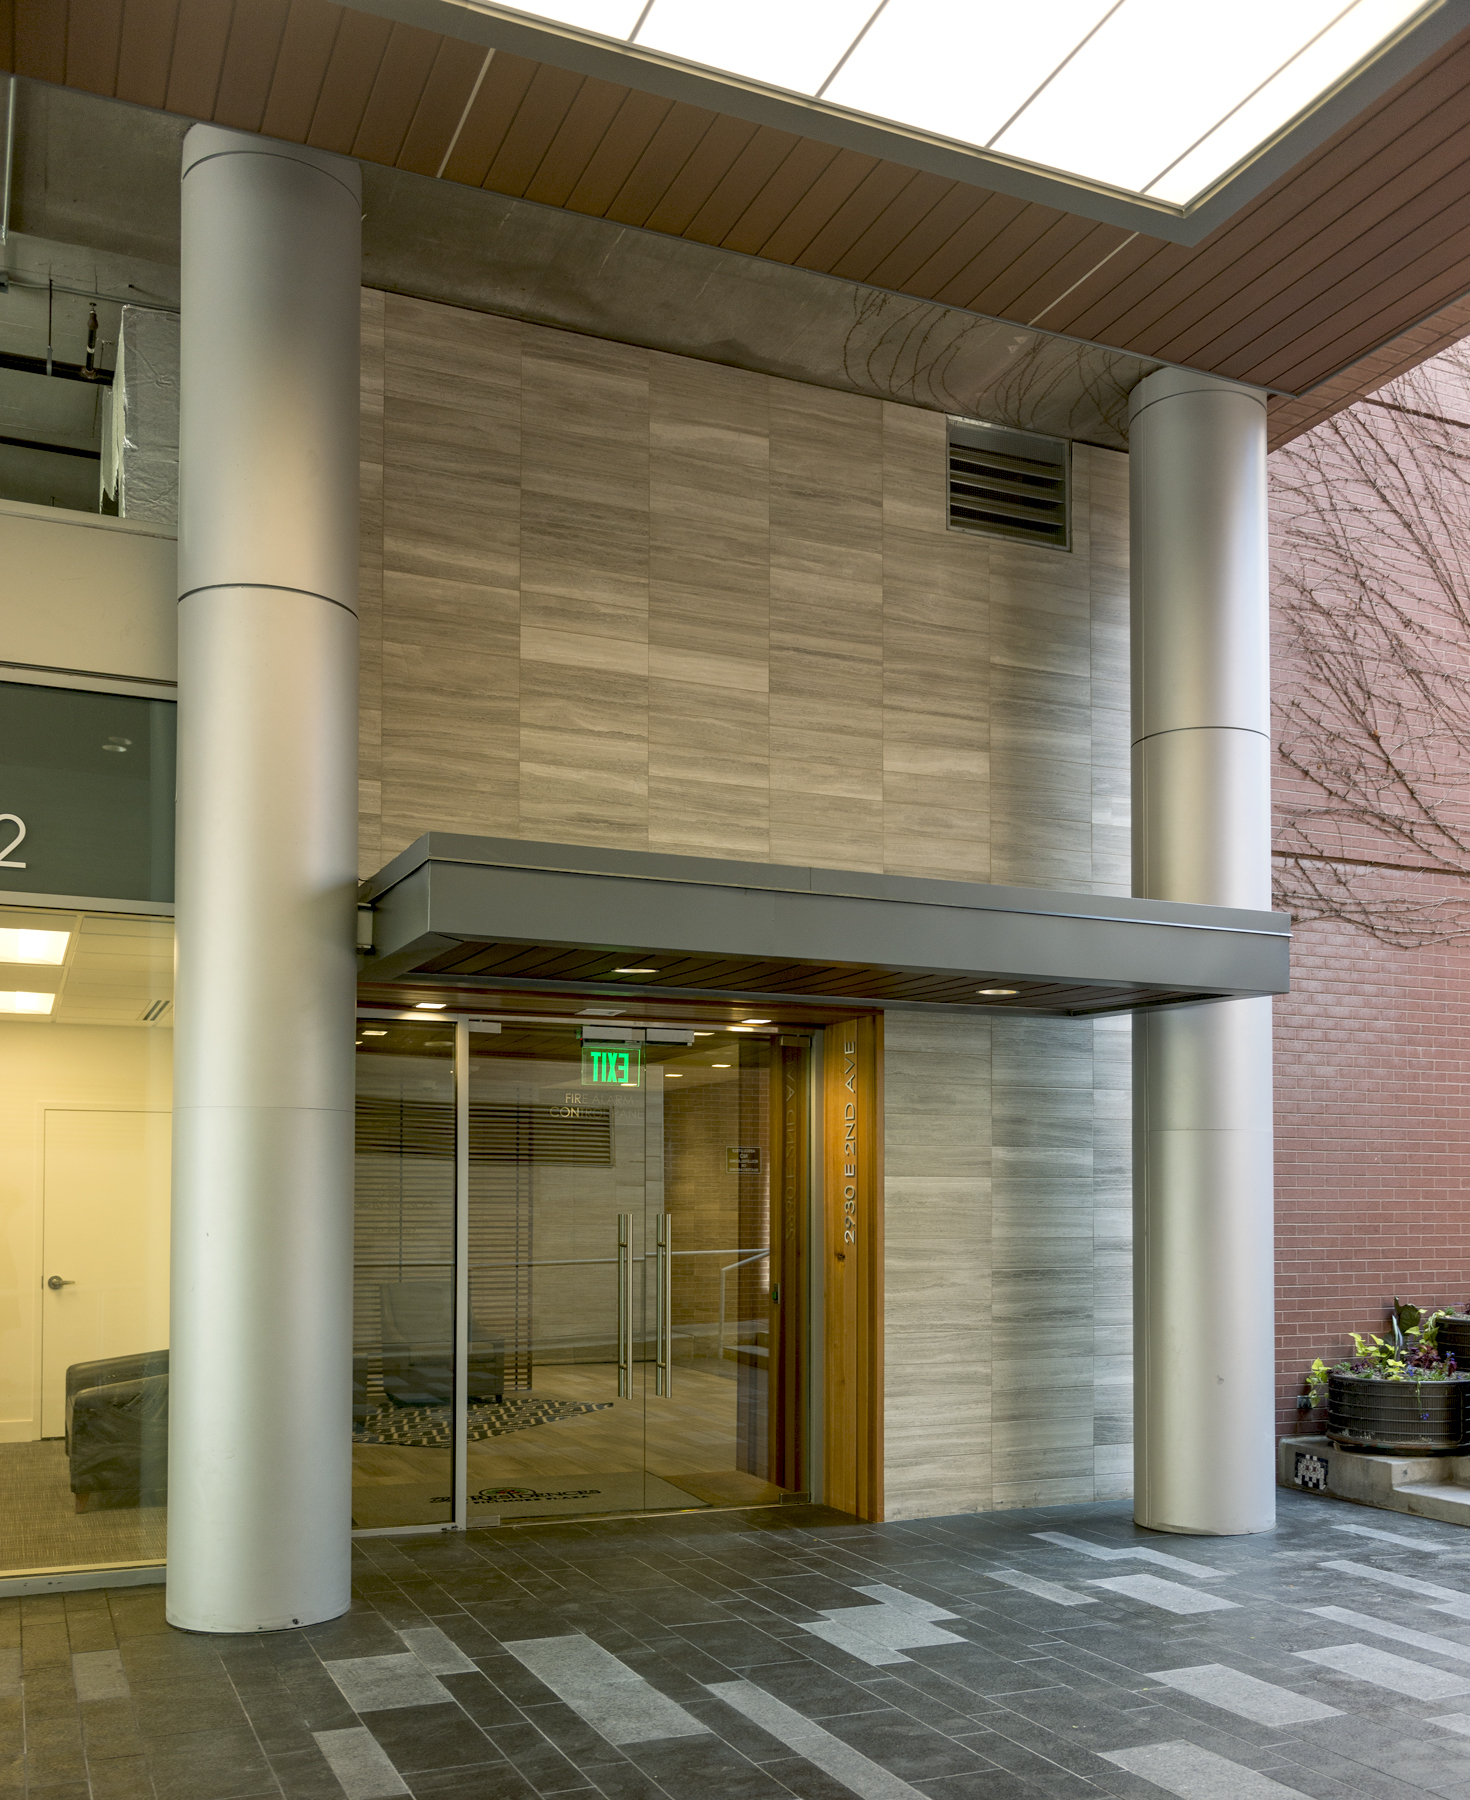 8 Residences at Fillmore Plaza Cherry Creek open studio architecture OSA - breezeway entry